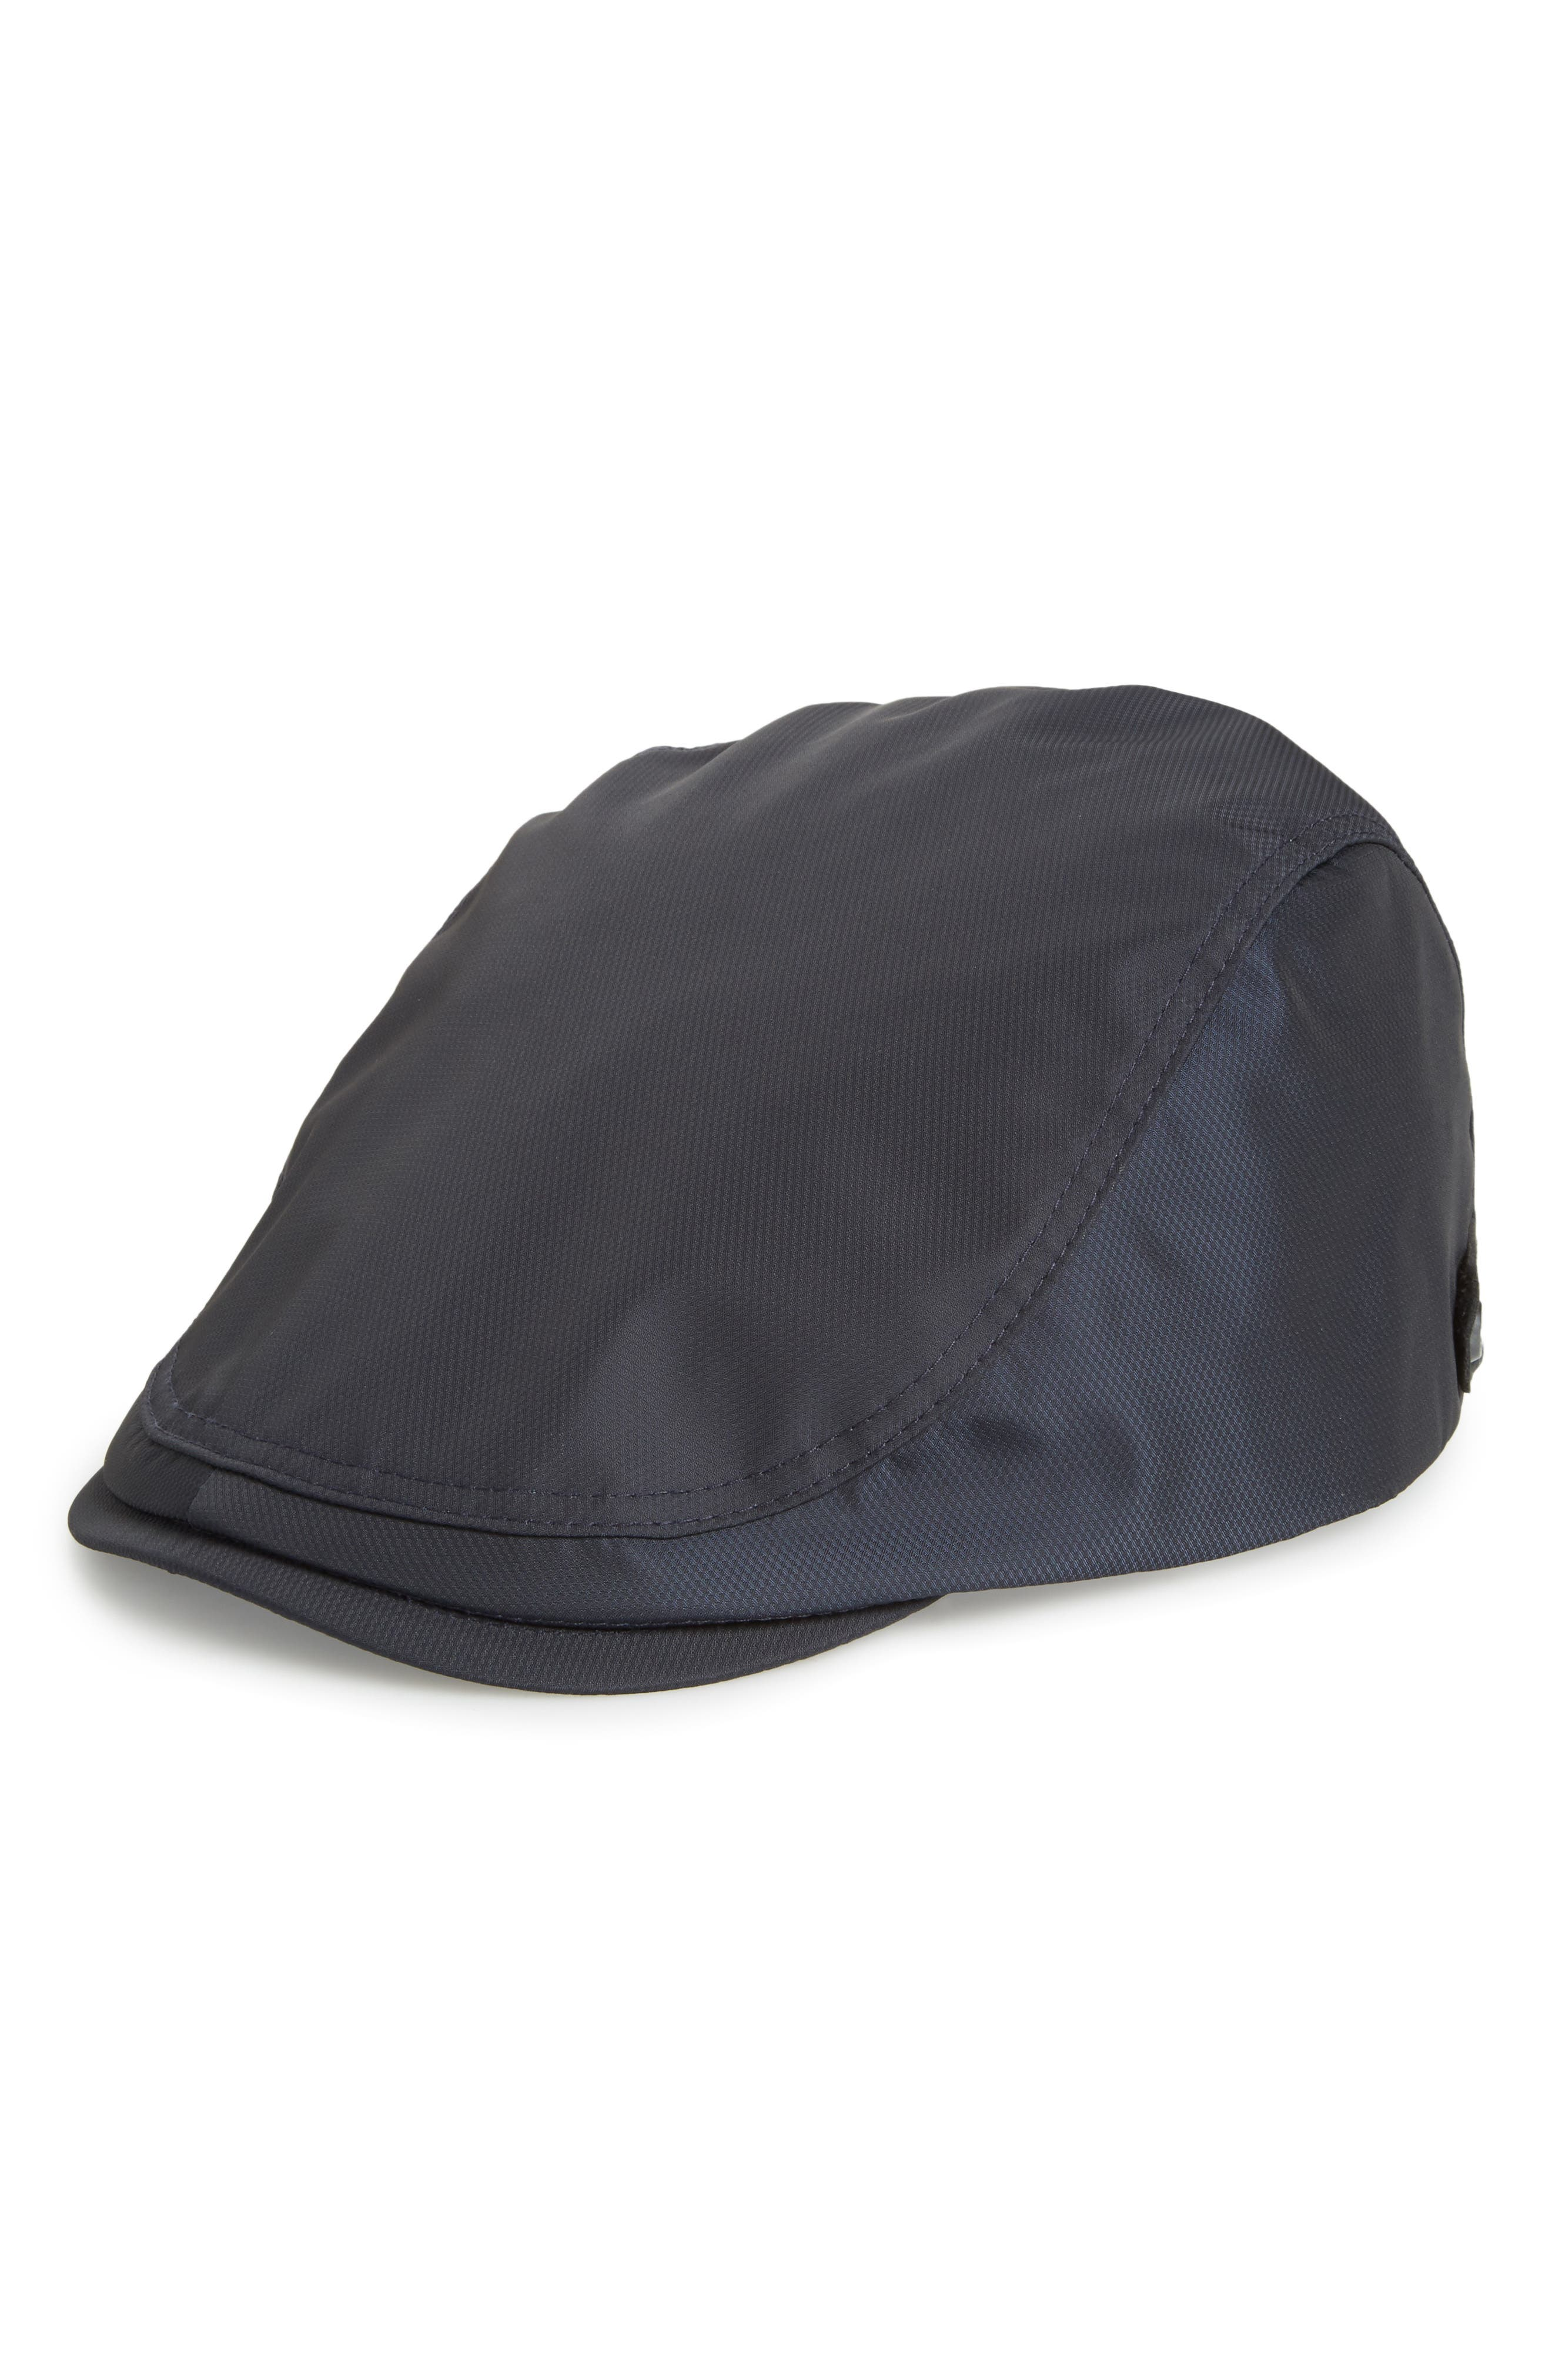 Robby Z Flat Driving Cap,                         Main,                         color, 410